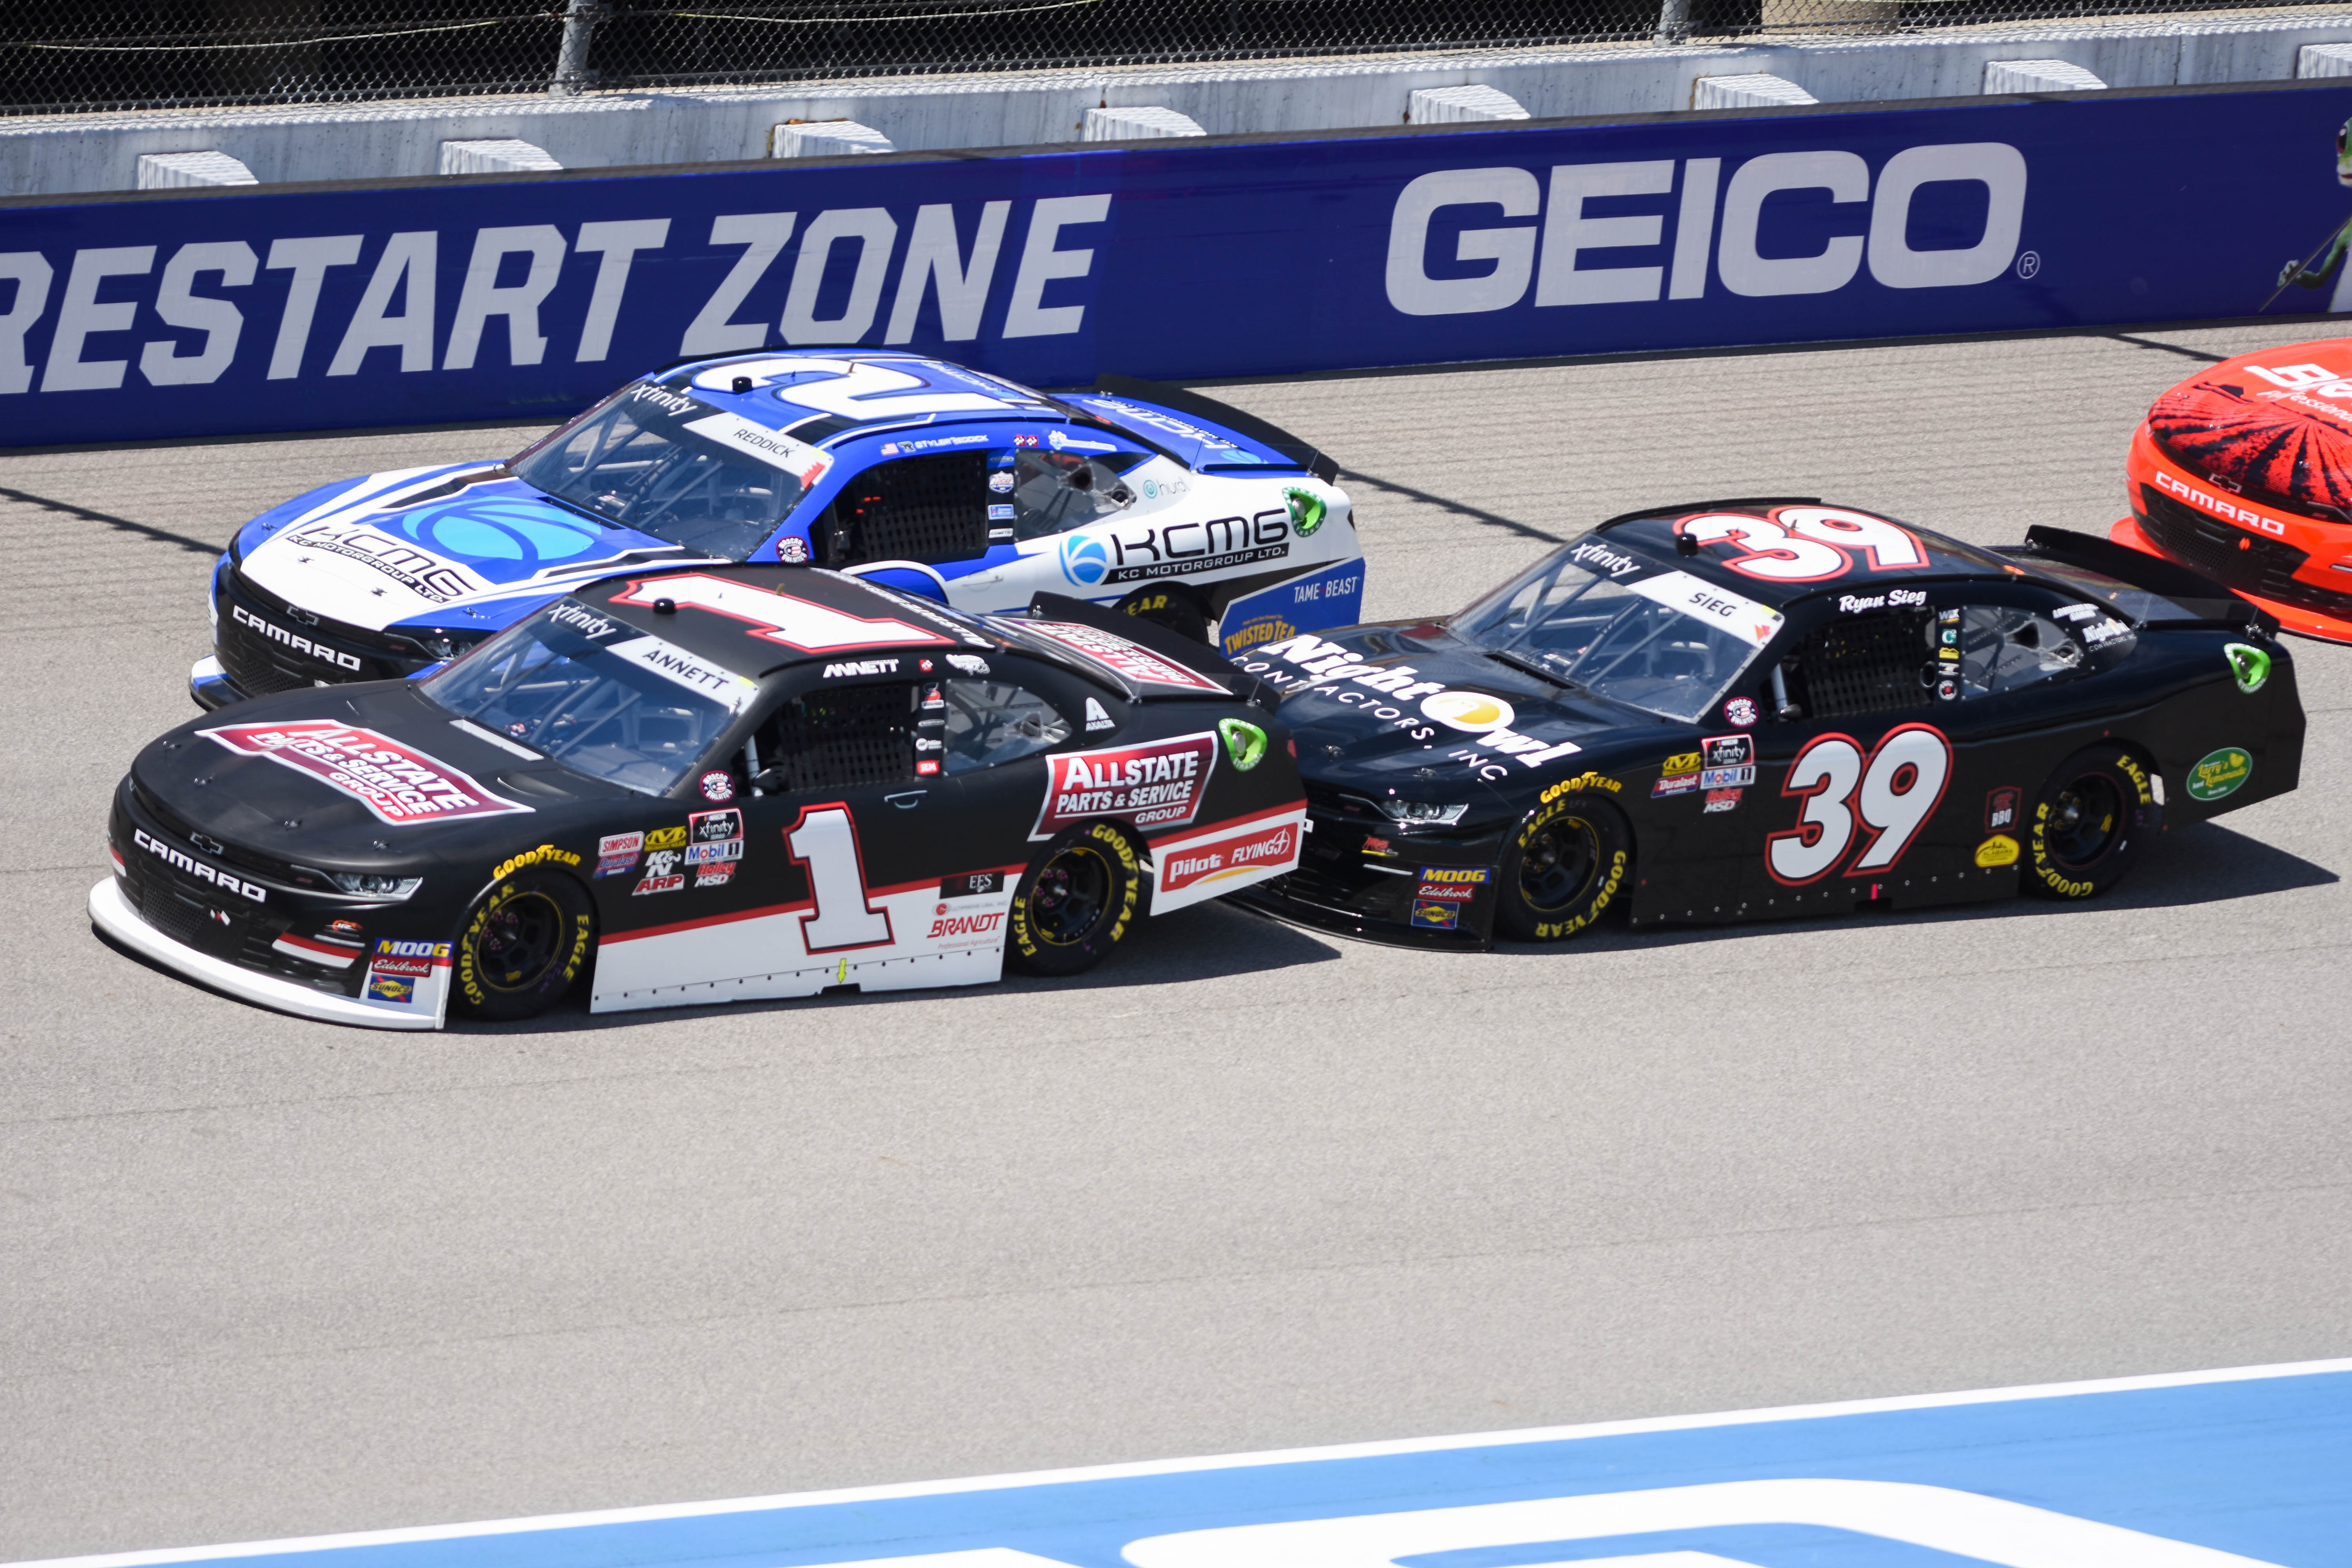 Code word mix-up dooms leaders in Saturday NASCAR MIS race